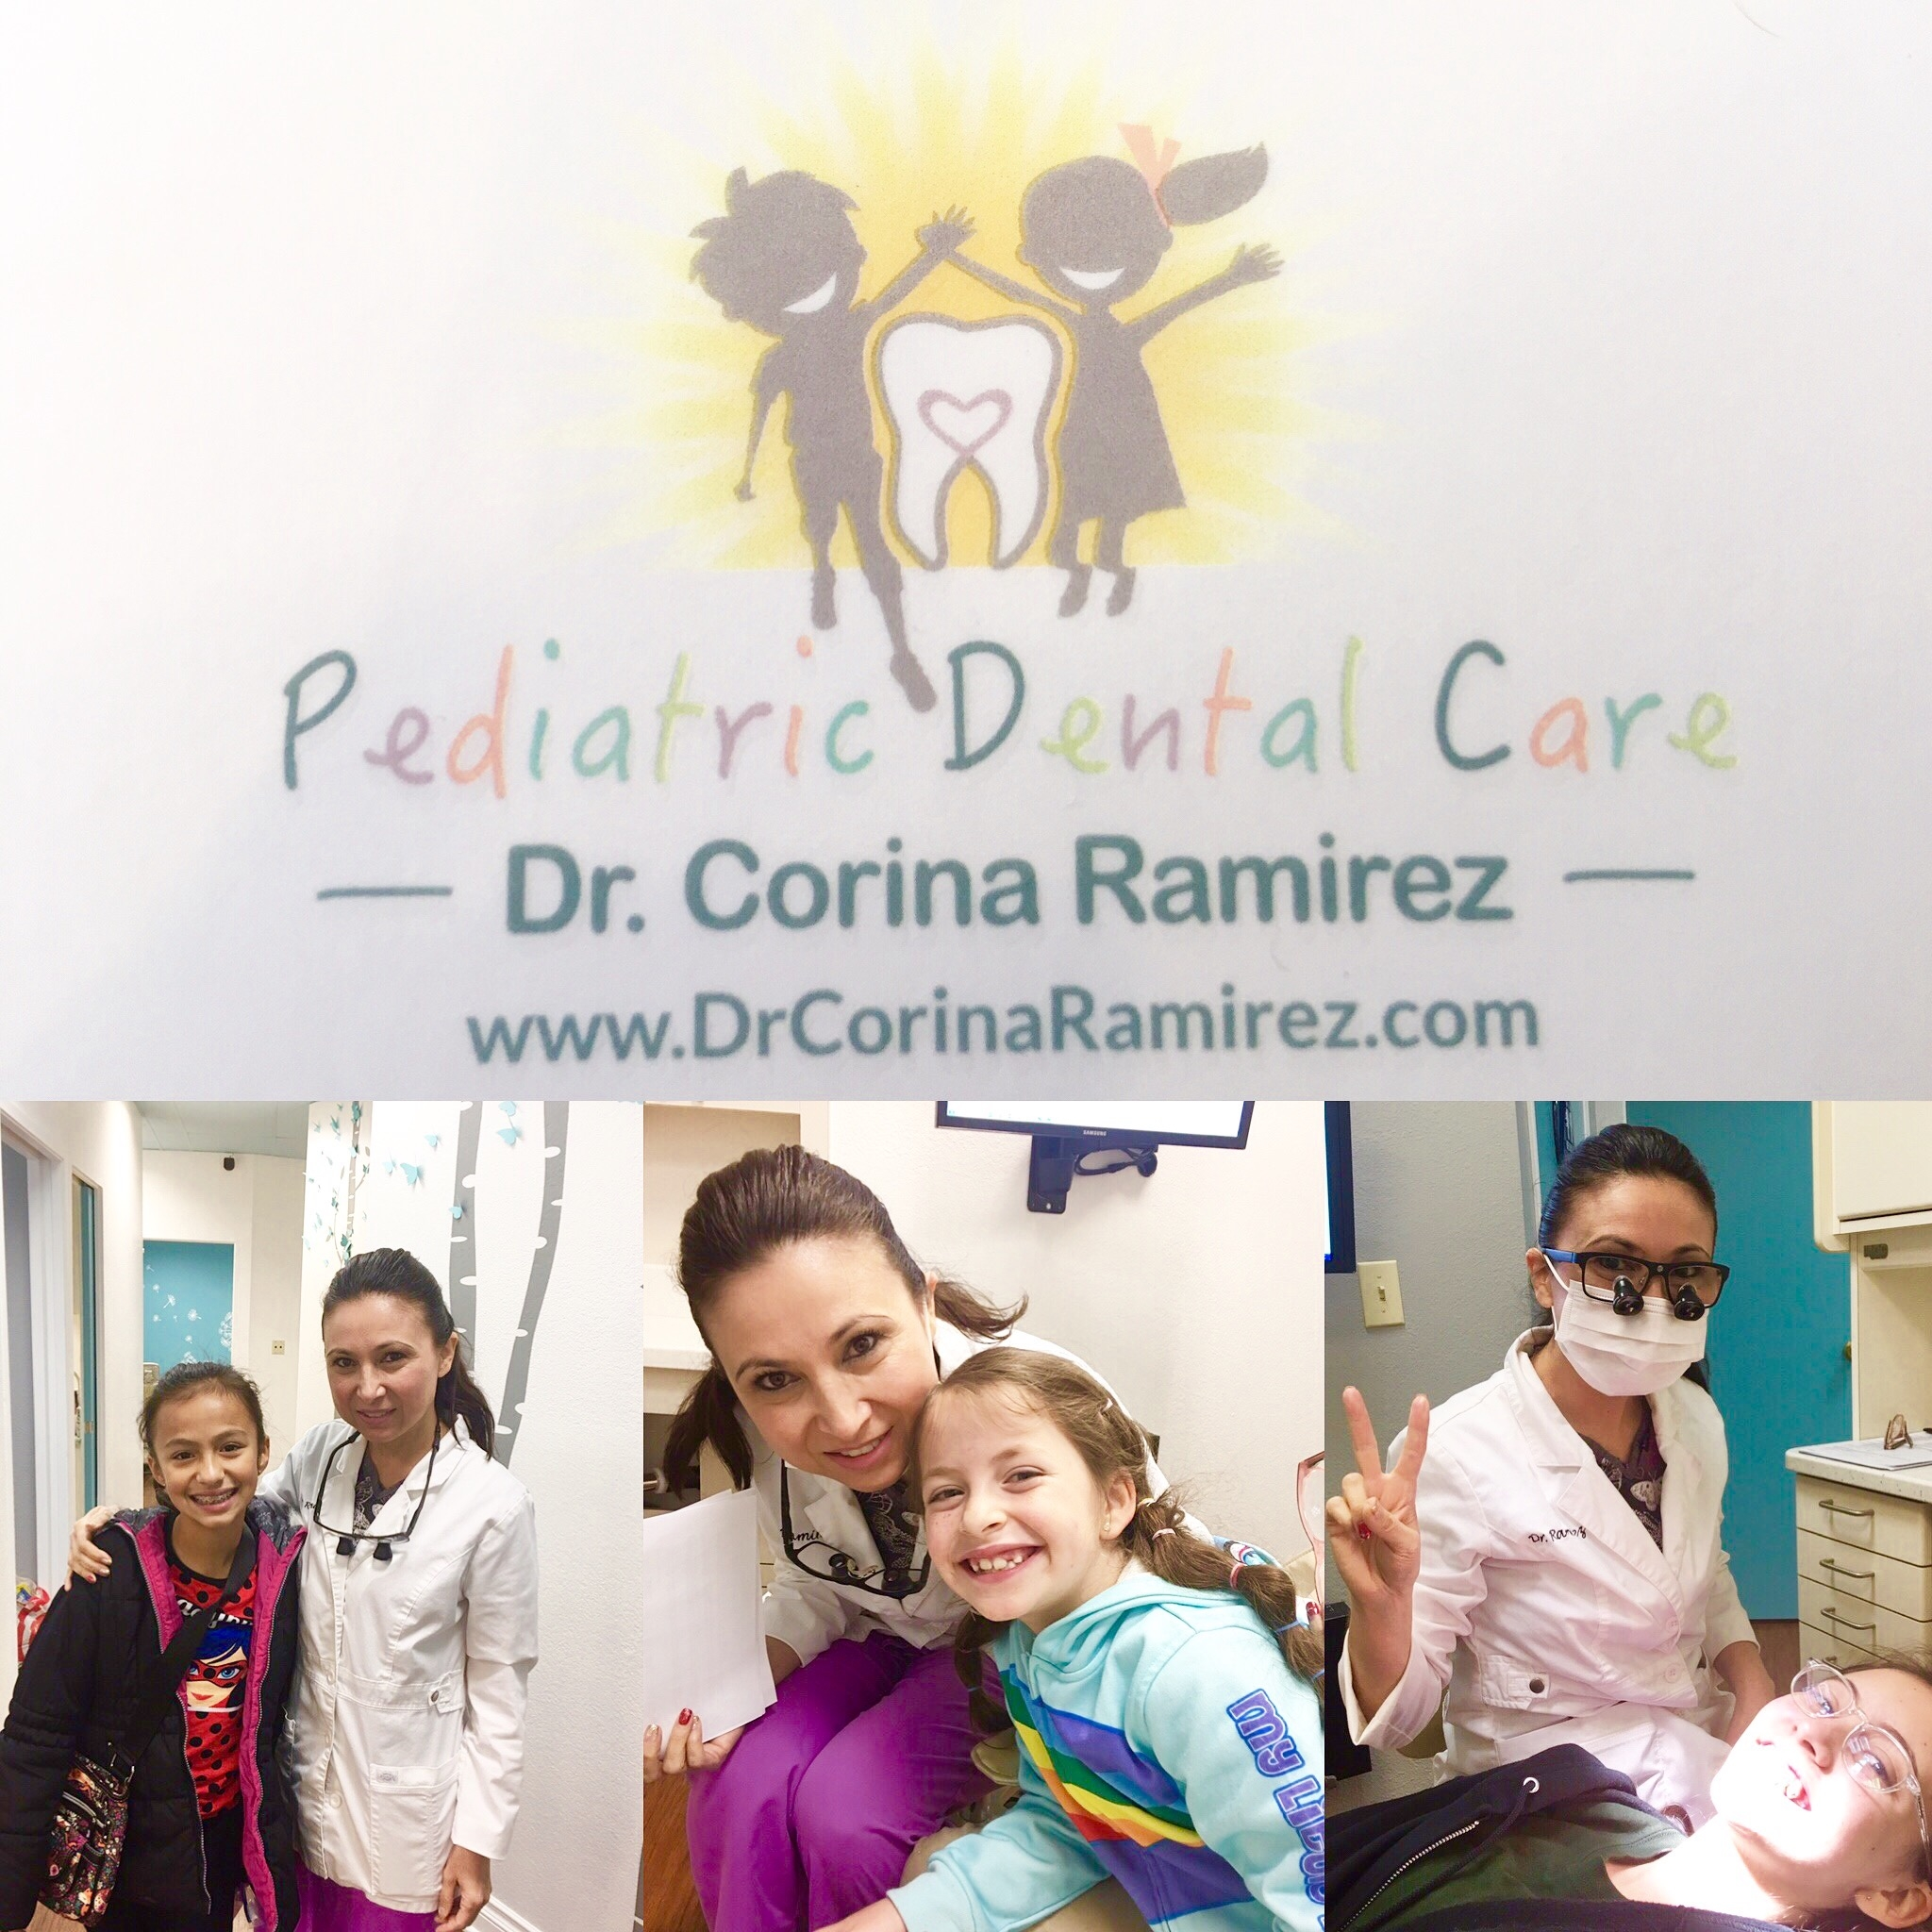 Corina Ramirez D.D.S., Pediatric Dental Care image 5